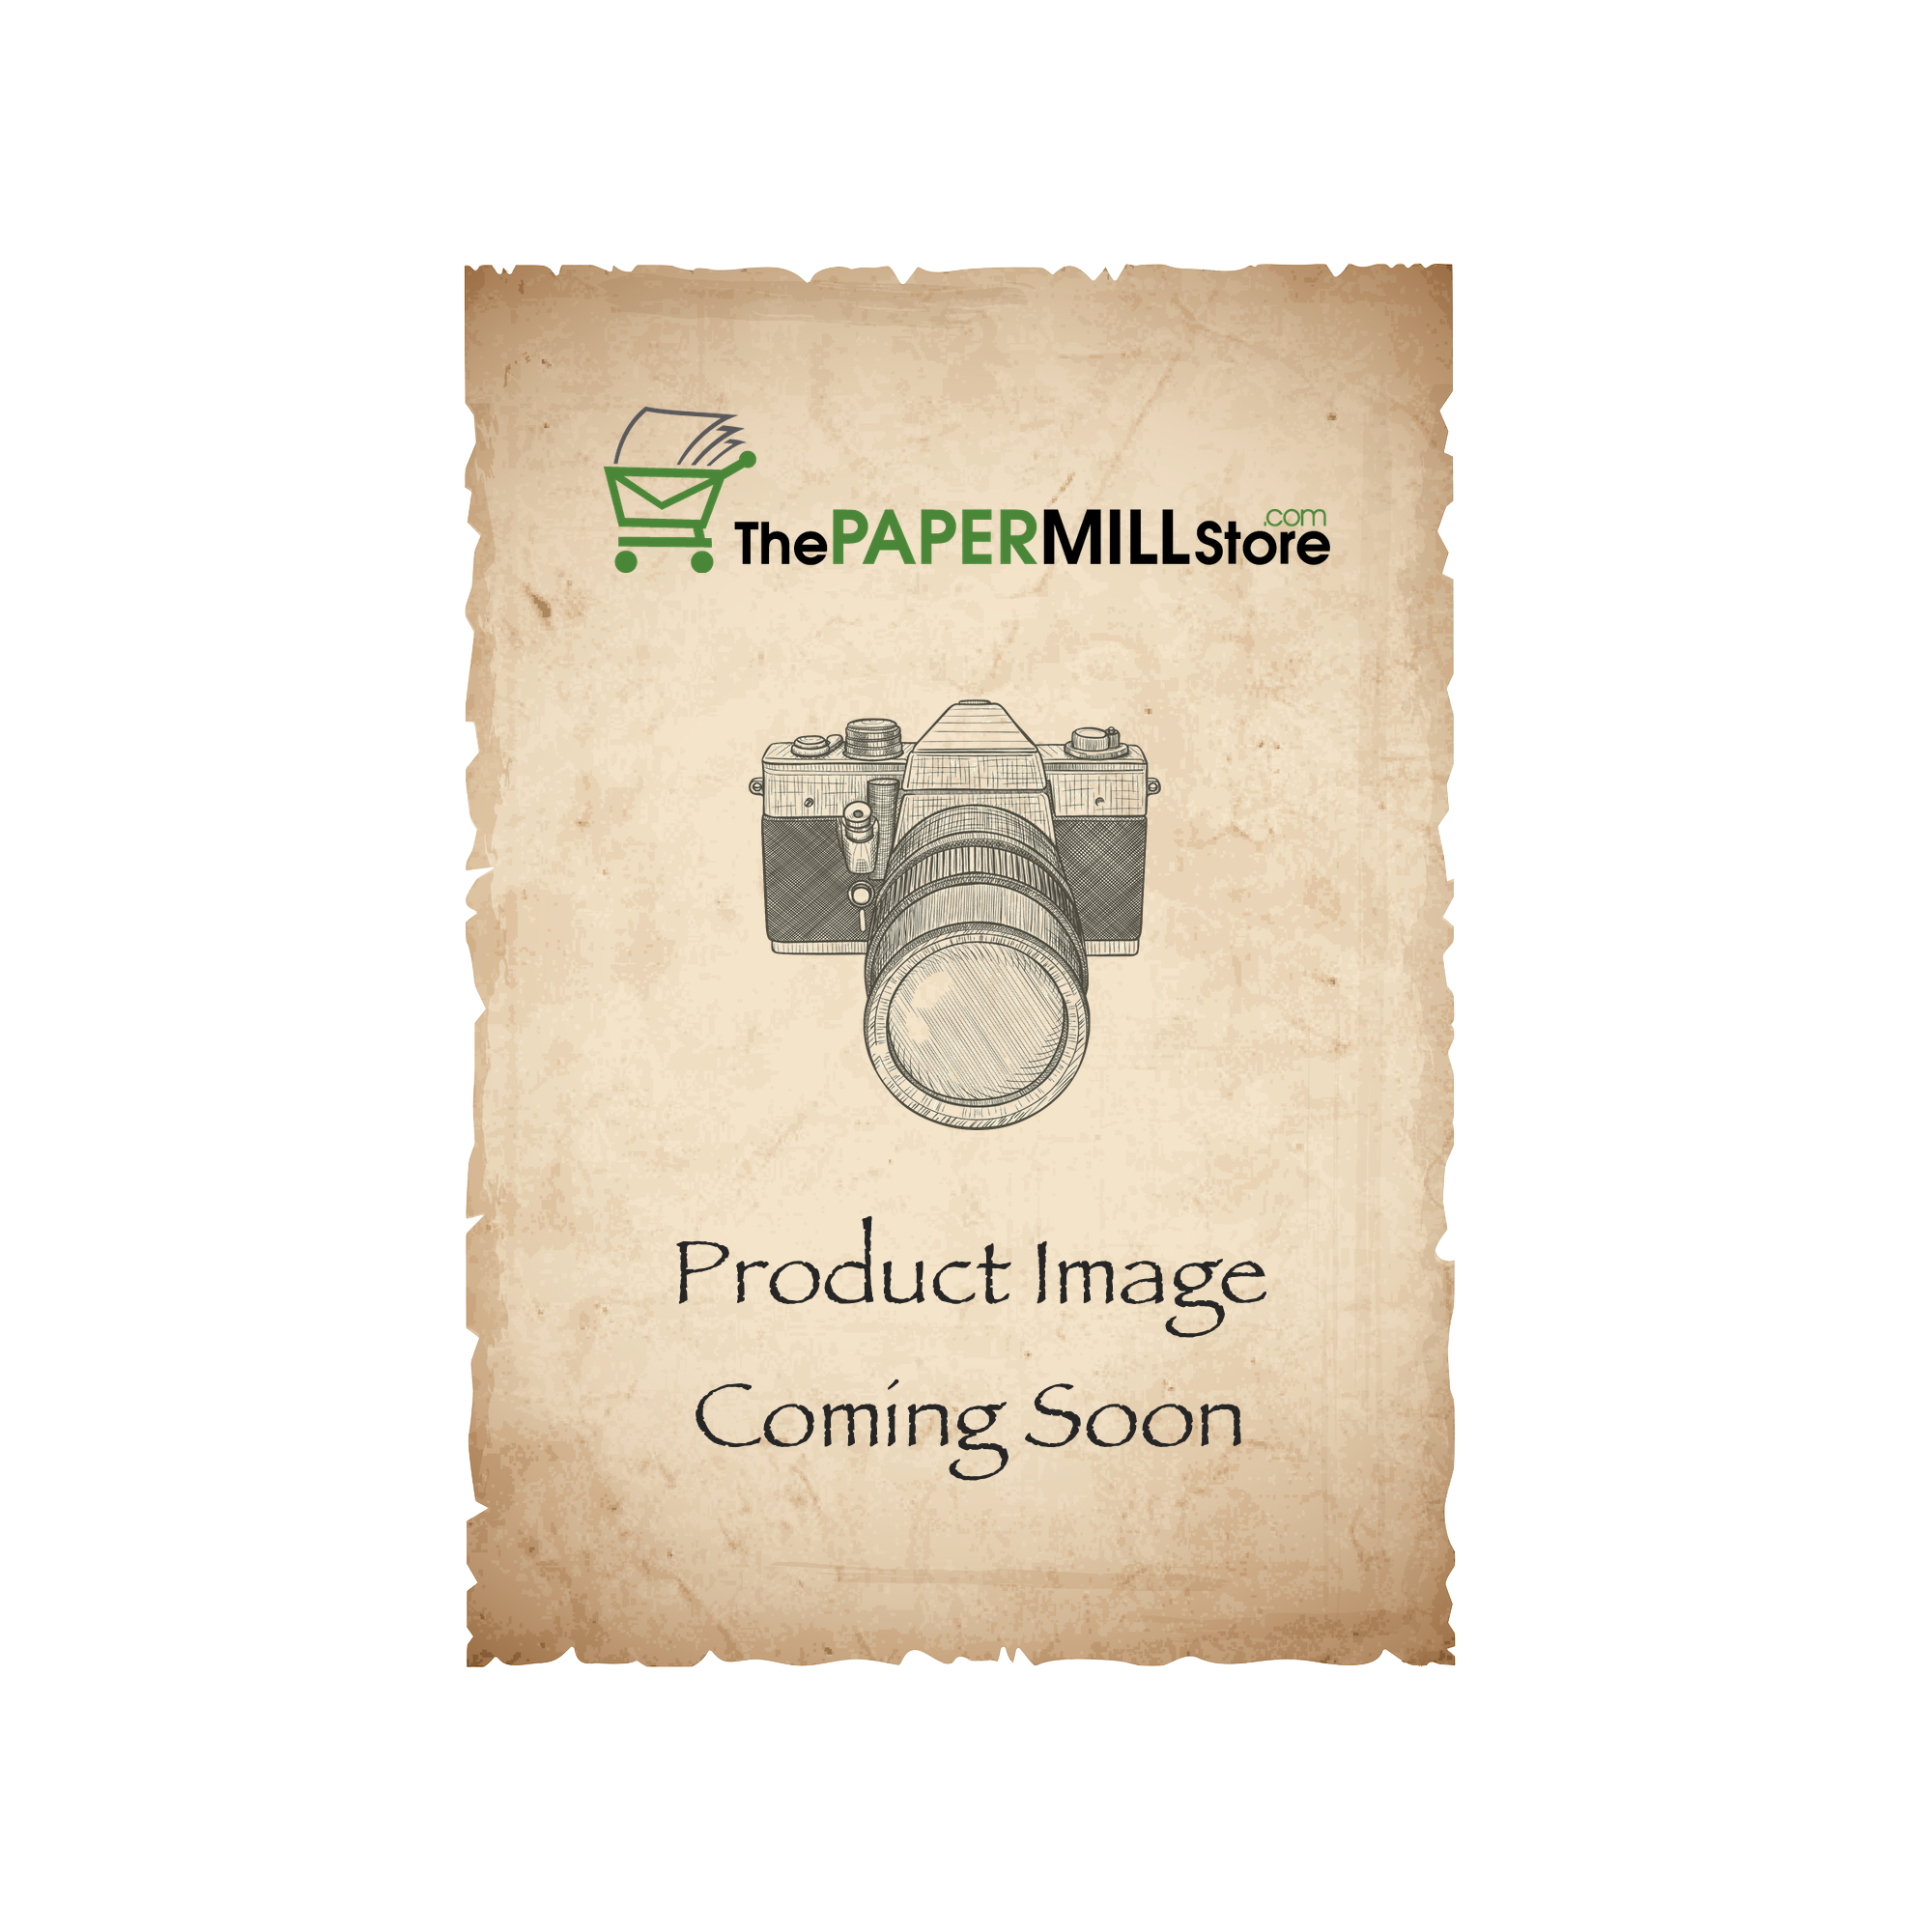 Buy Strathmore Premium Grandee Bright White Card Stock - 26 x 40 in 100 lb Cover Felt 100 per Package at The Paper Mill Store .com